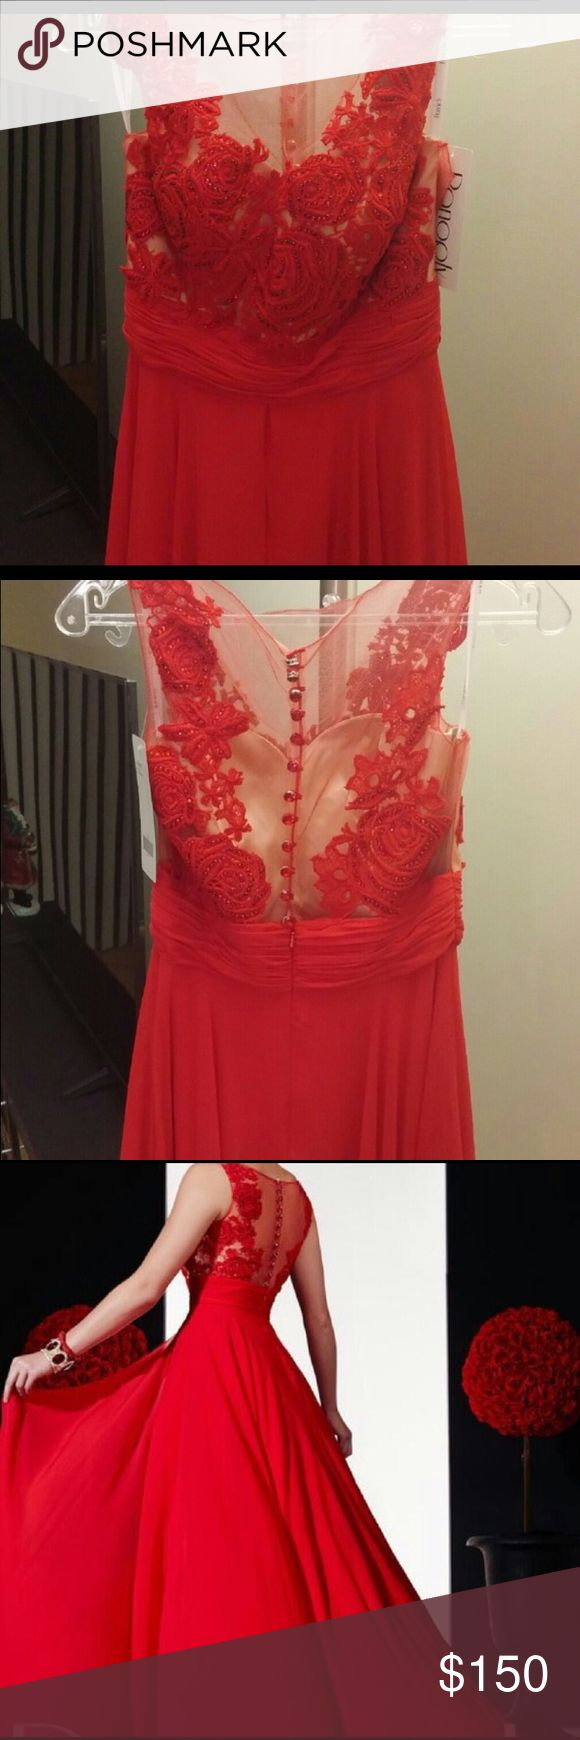 New panoply red lace gown! Brand new prom dress panoply Dresses Prom